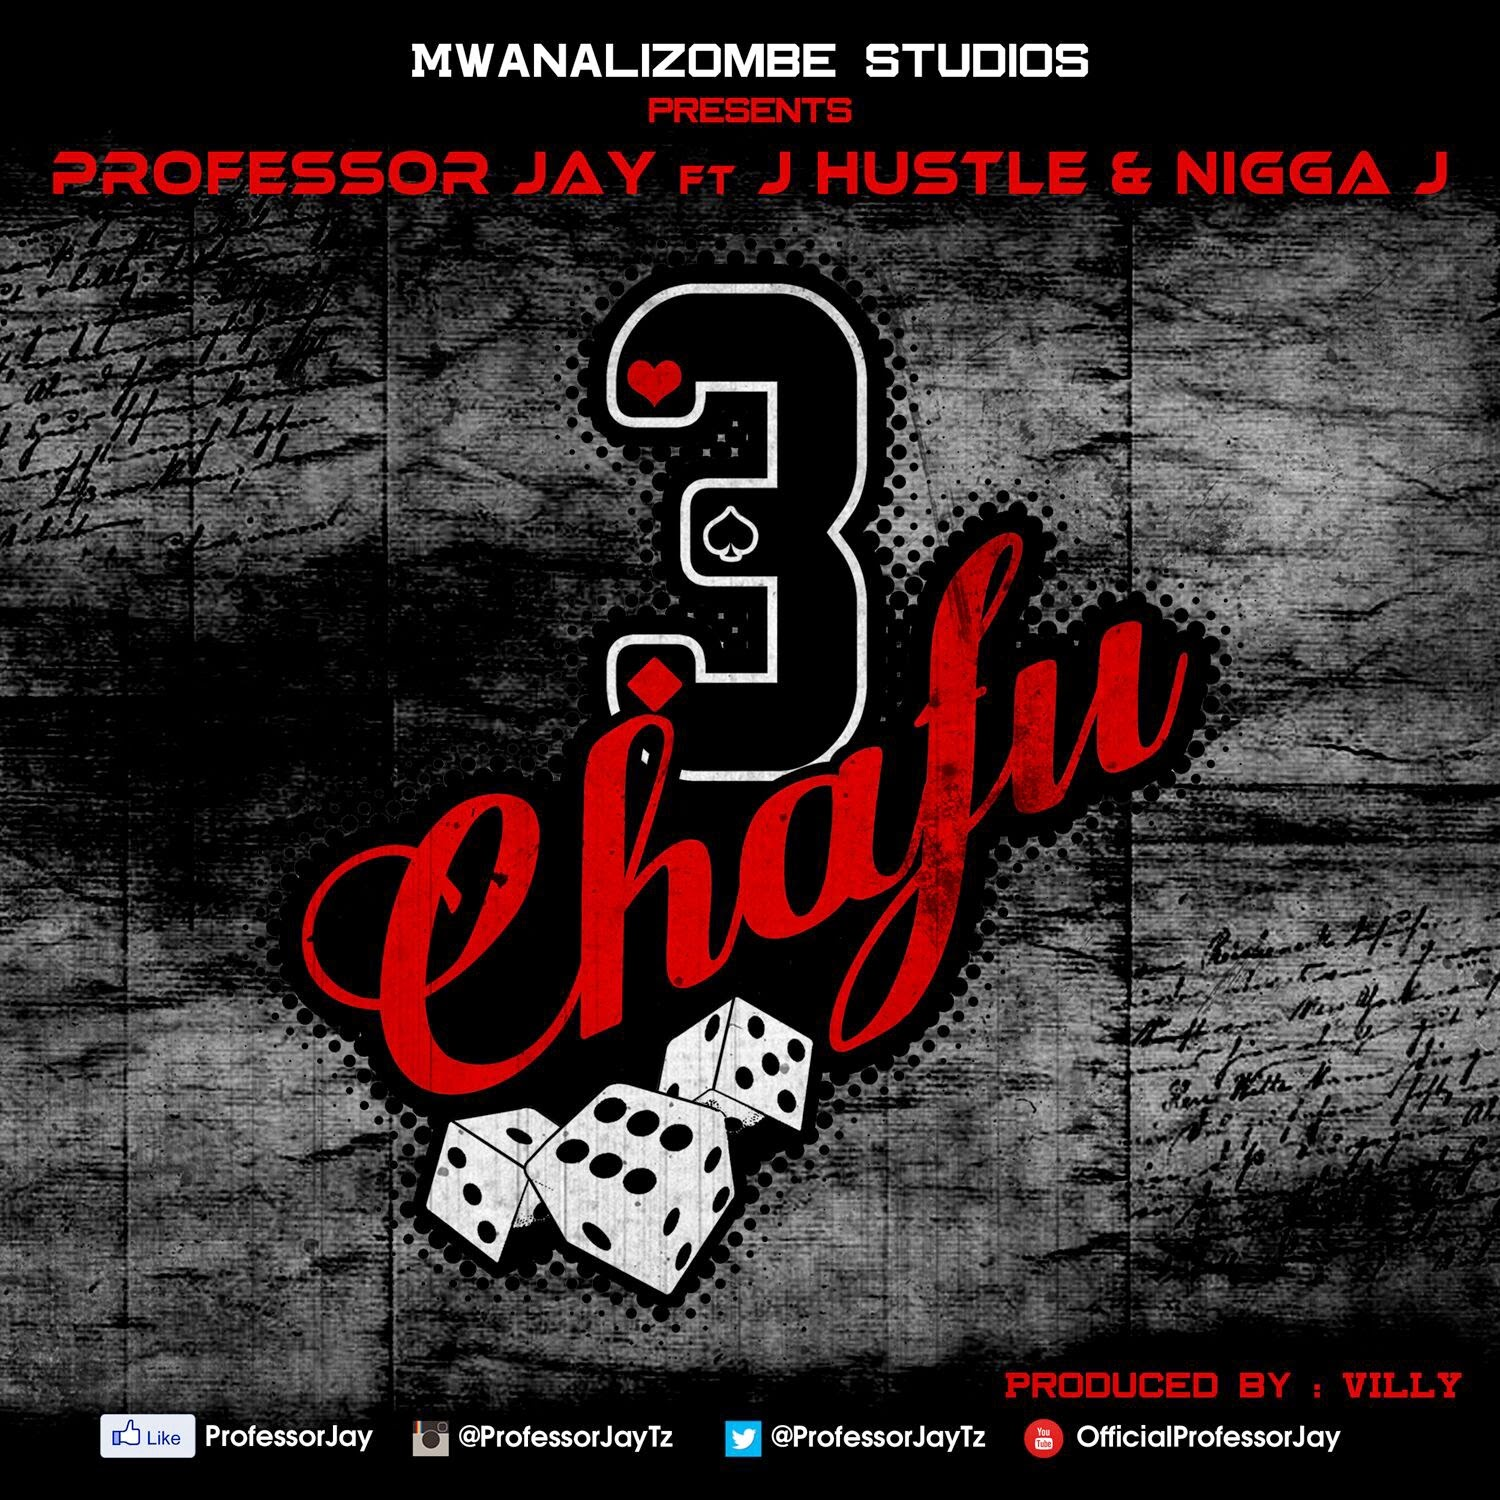 NEW AUDIO:: PROFESSOR JAY ( @professorJayTz ) - 3 Chafu Produced By VILLY